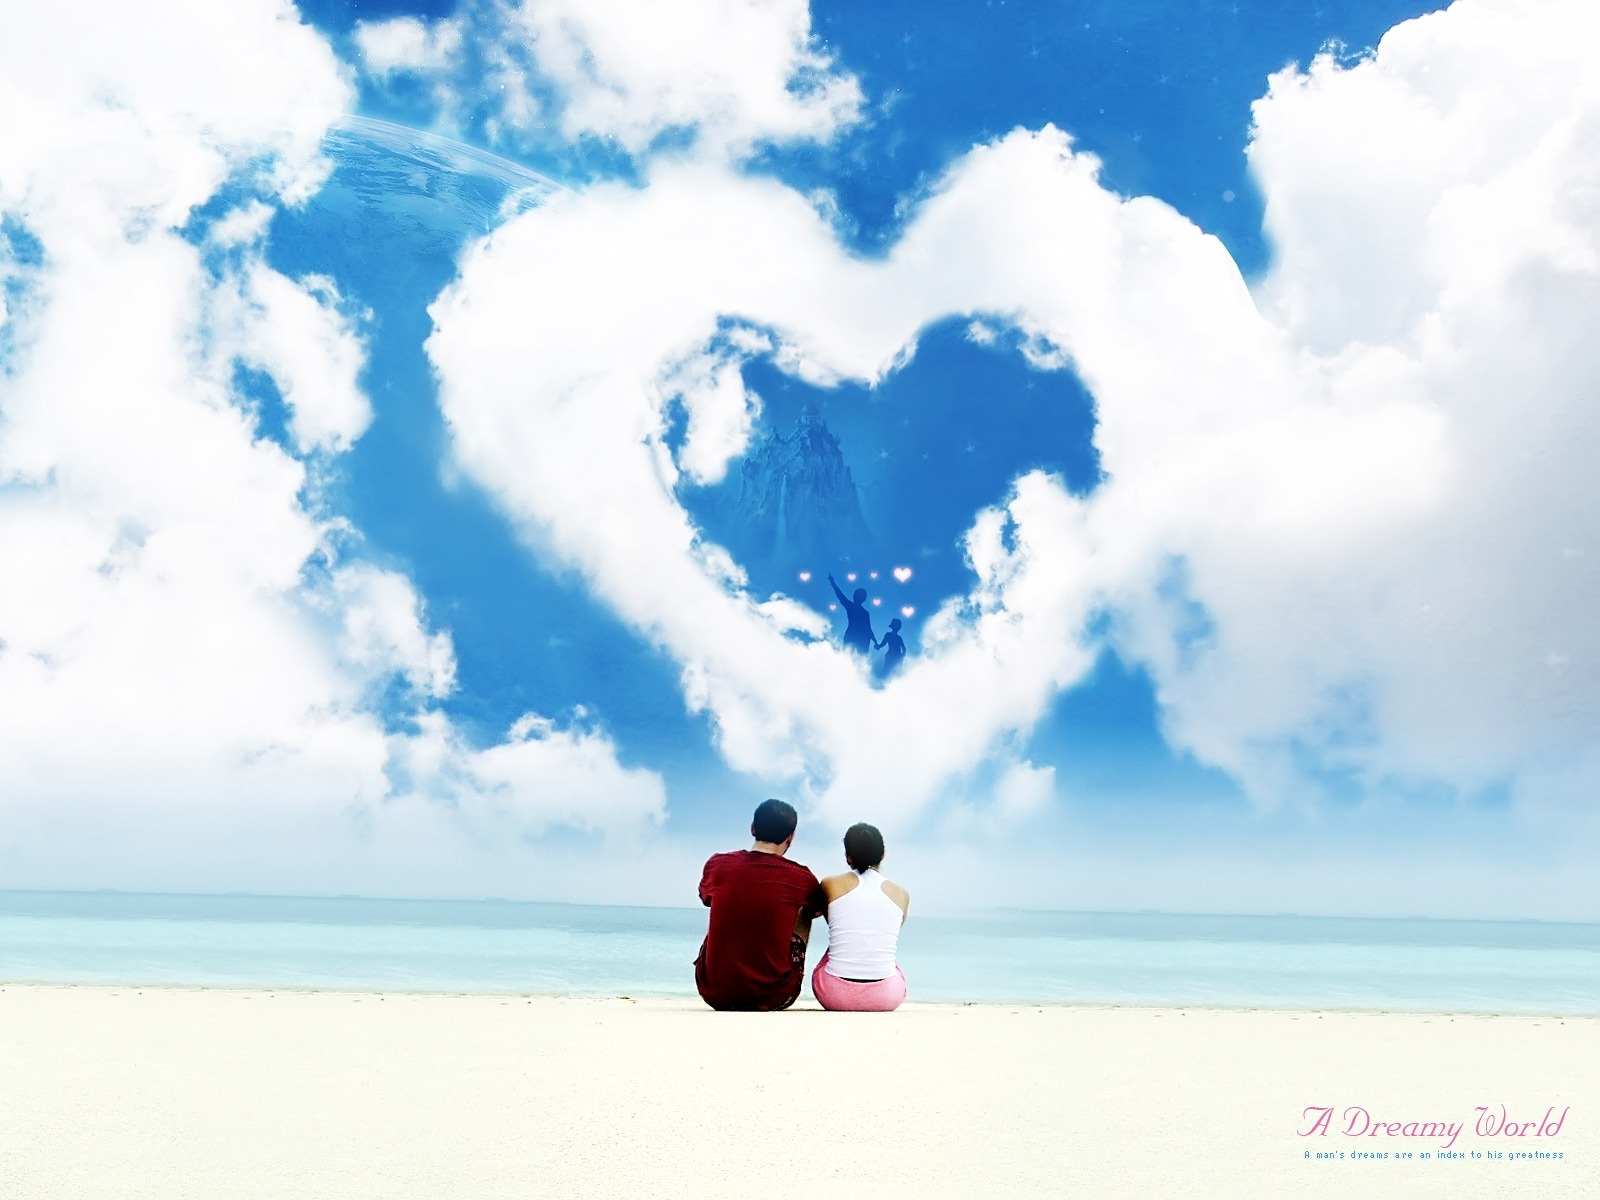 Download beautiful pictures of love